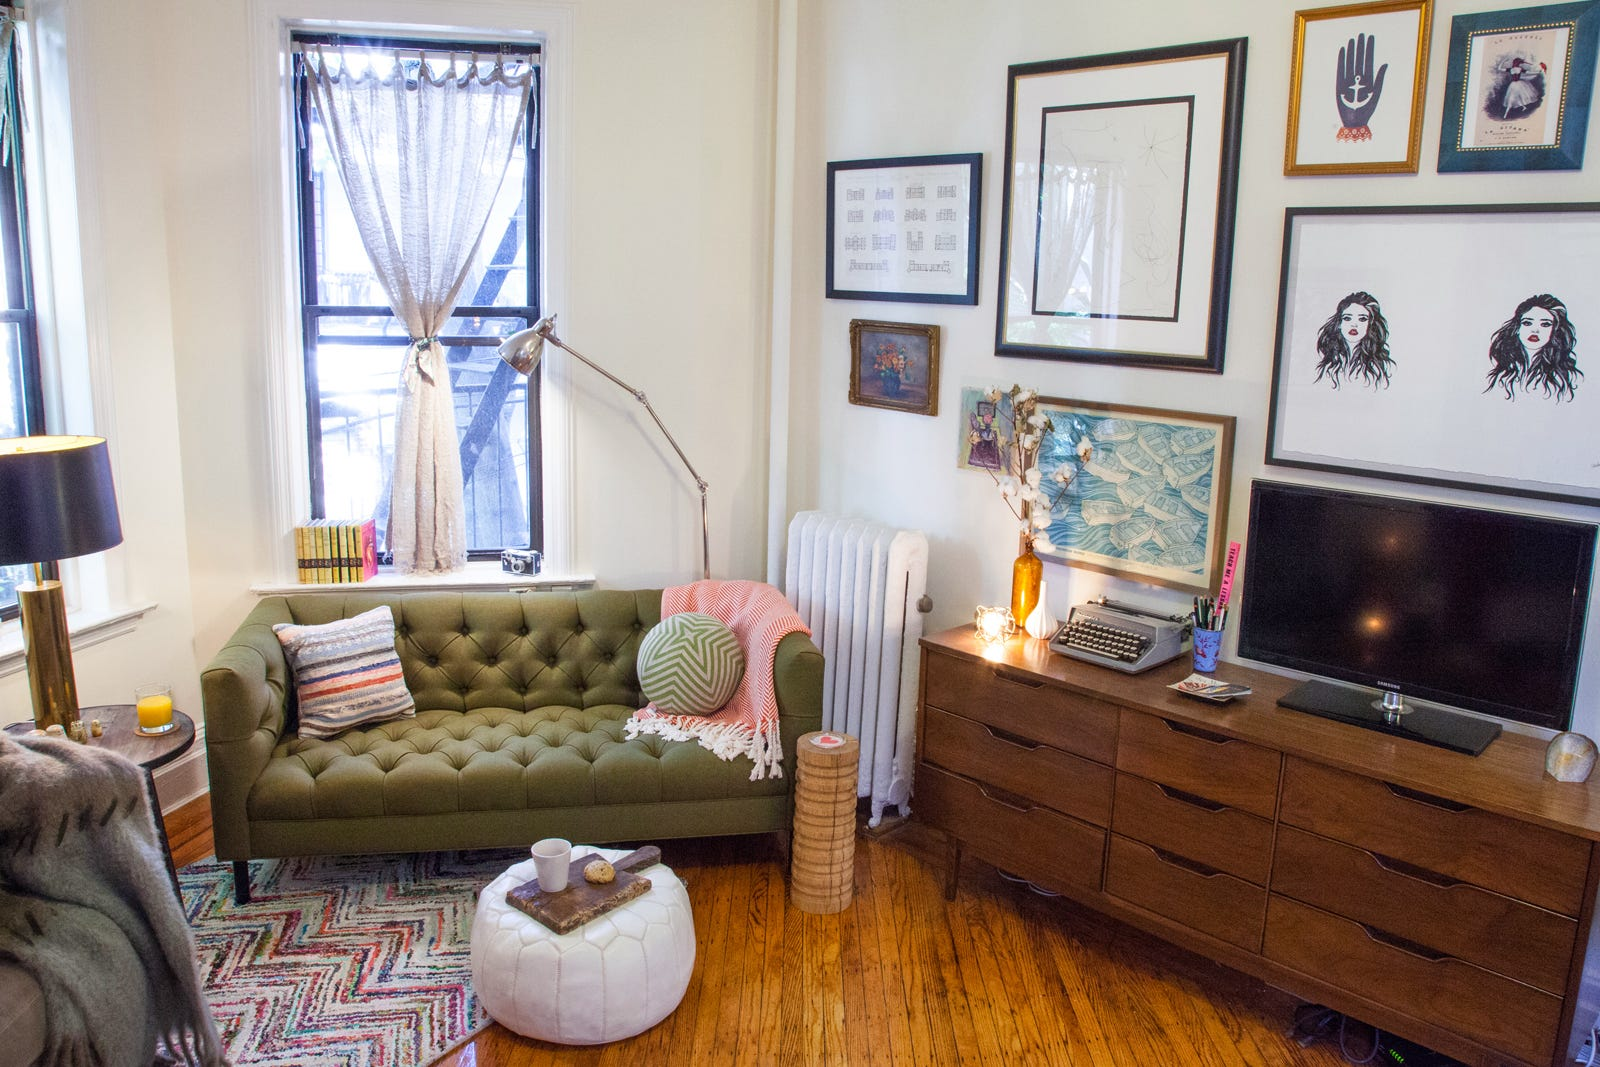 Small Apartment Living - Home Decor for Tiny Spaces